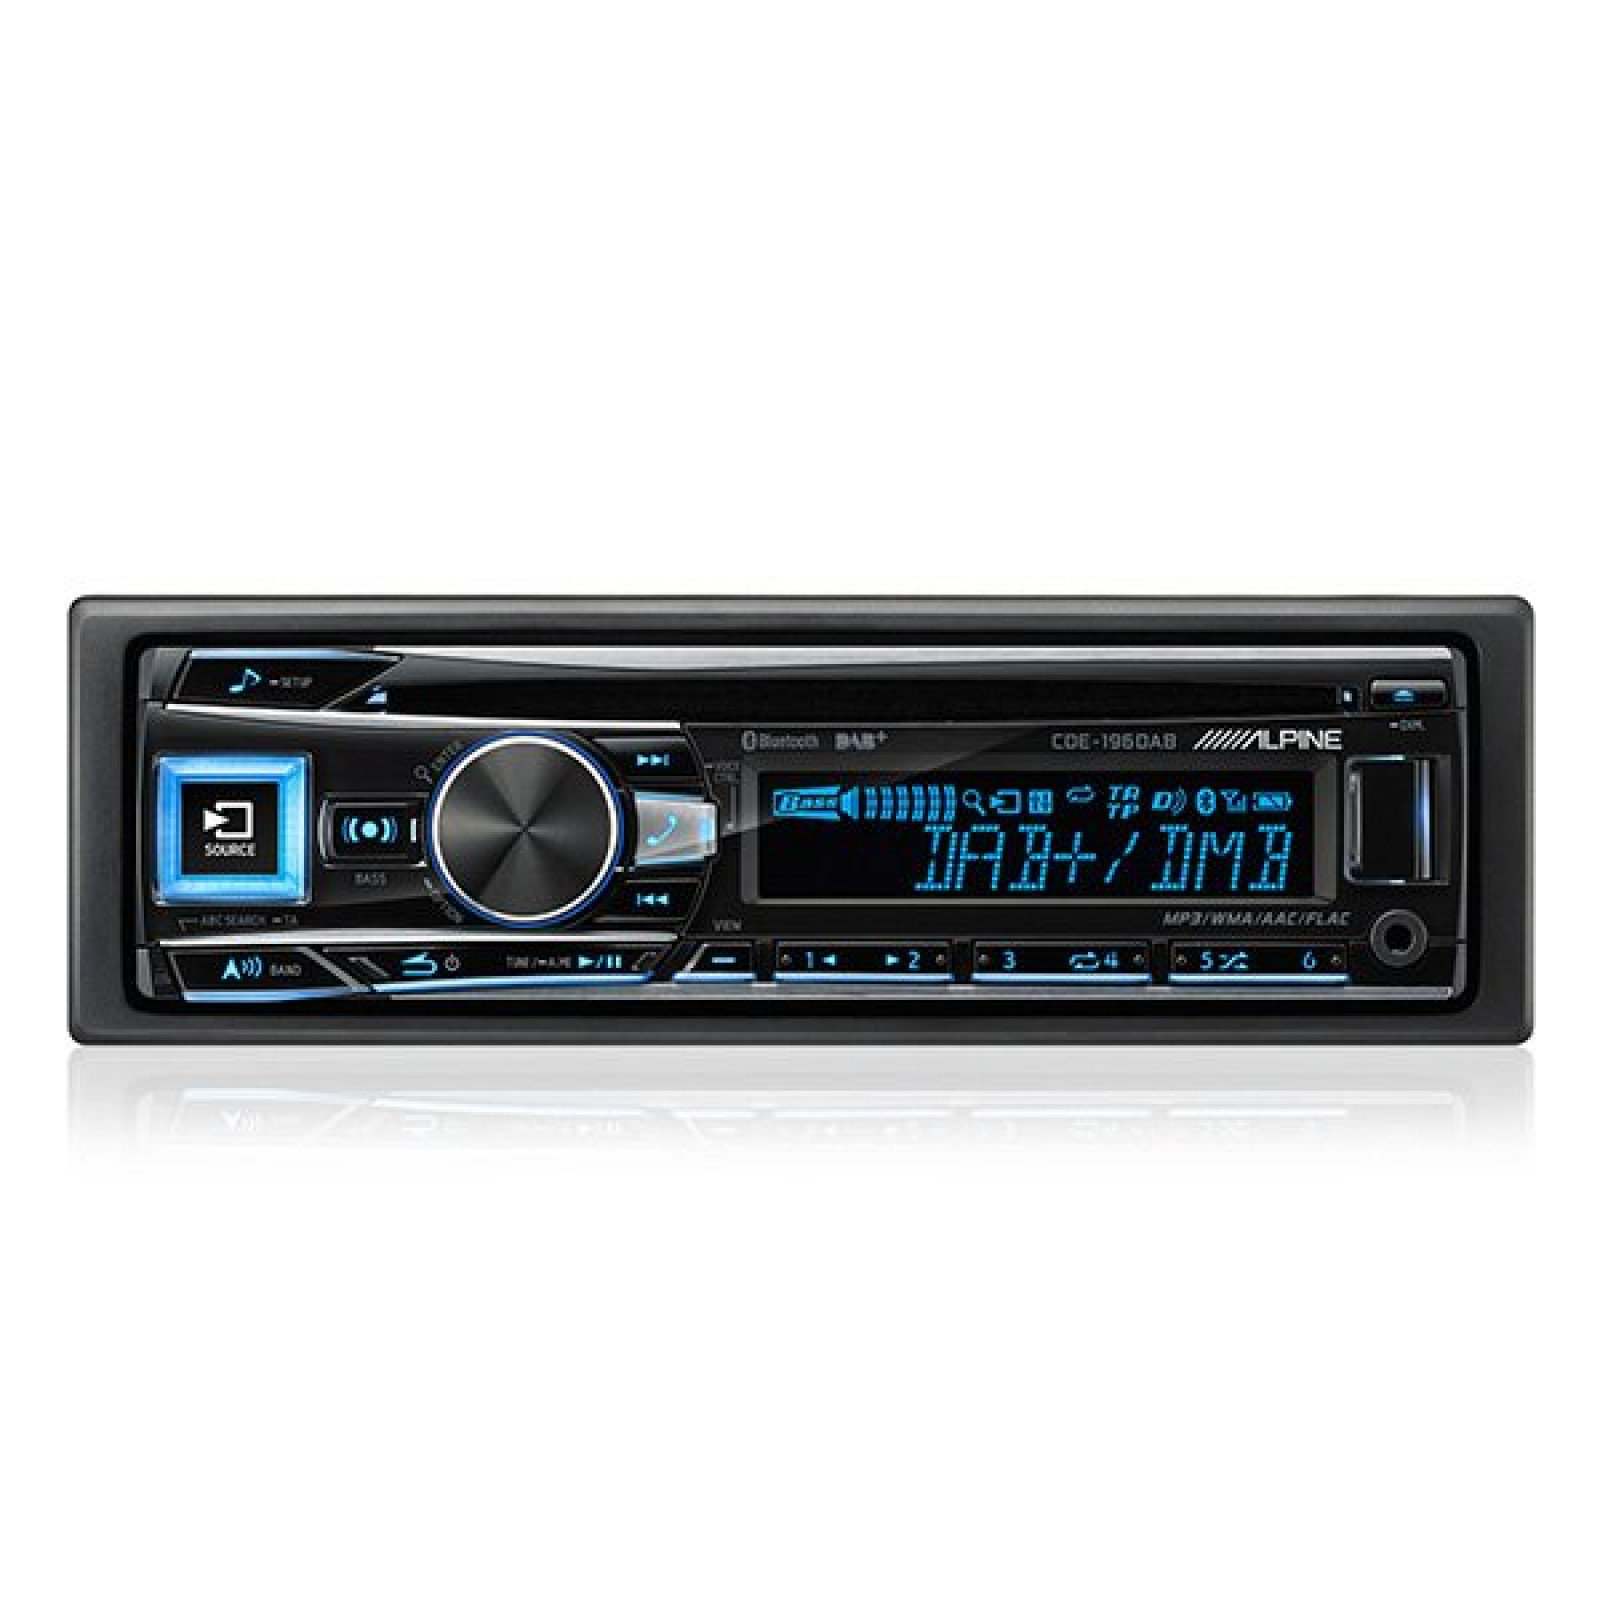 alpine cde 196dab single din radio cd mp3 bluetooth usb. Black Bedroom Furniture Sets. Home Design Ideas